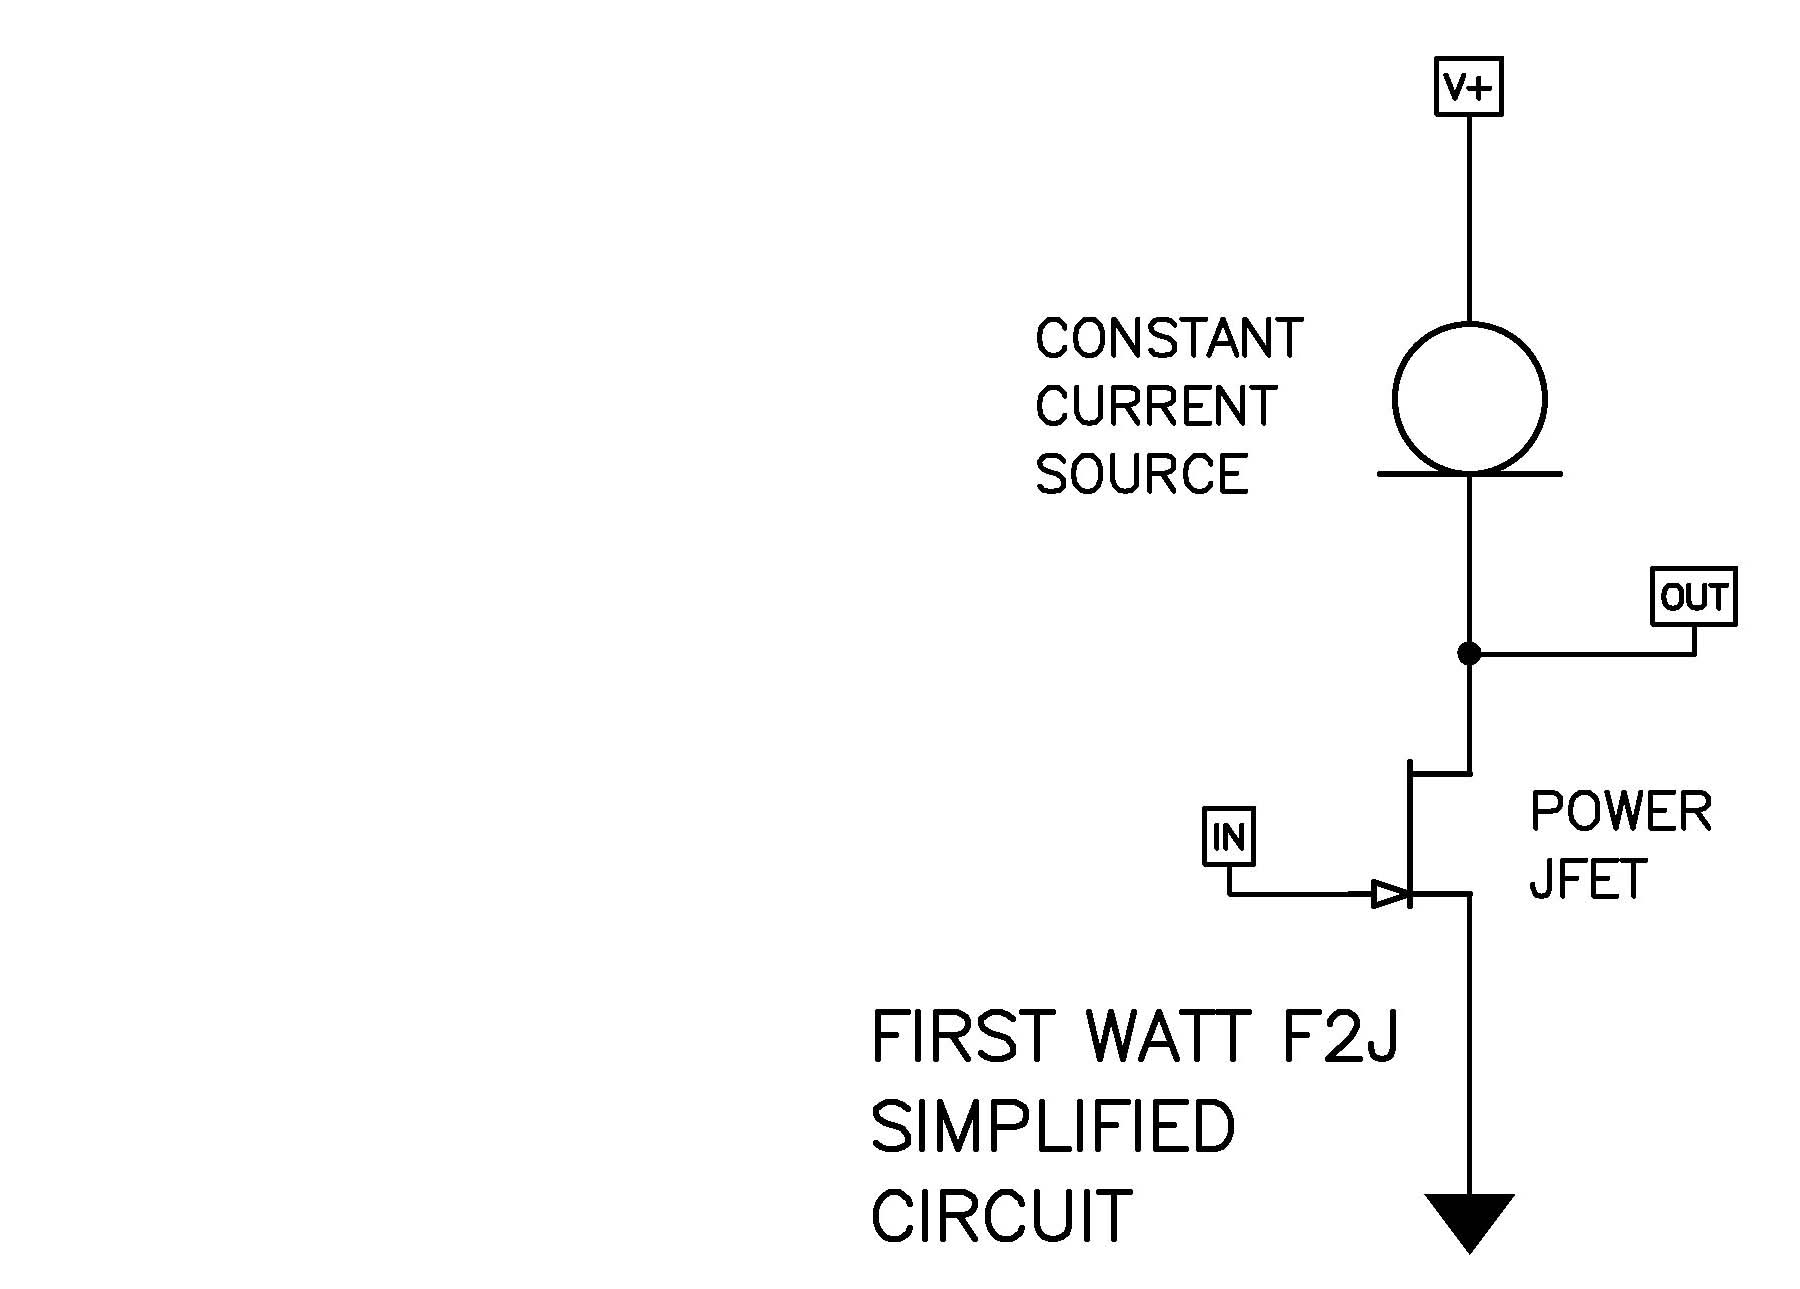 First Watt Current Amplifier Circuit Transistor In Addition There Have Been Changes To Several Resistor Values And Removal Of The Input Zener Protection Diodes As With F2 Simplified